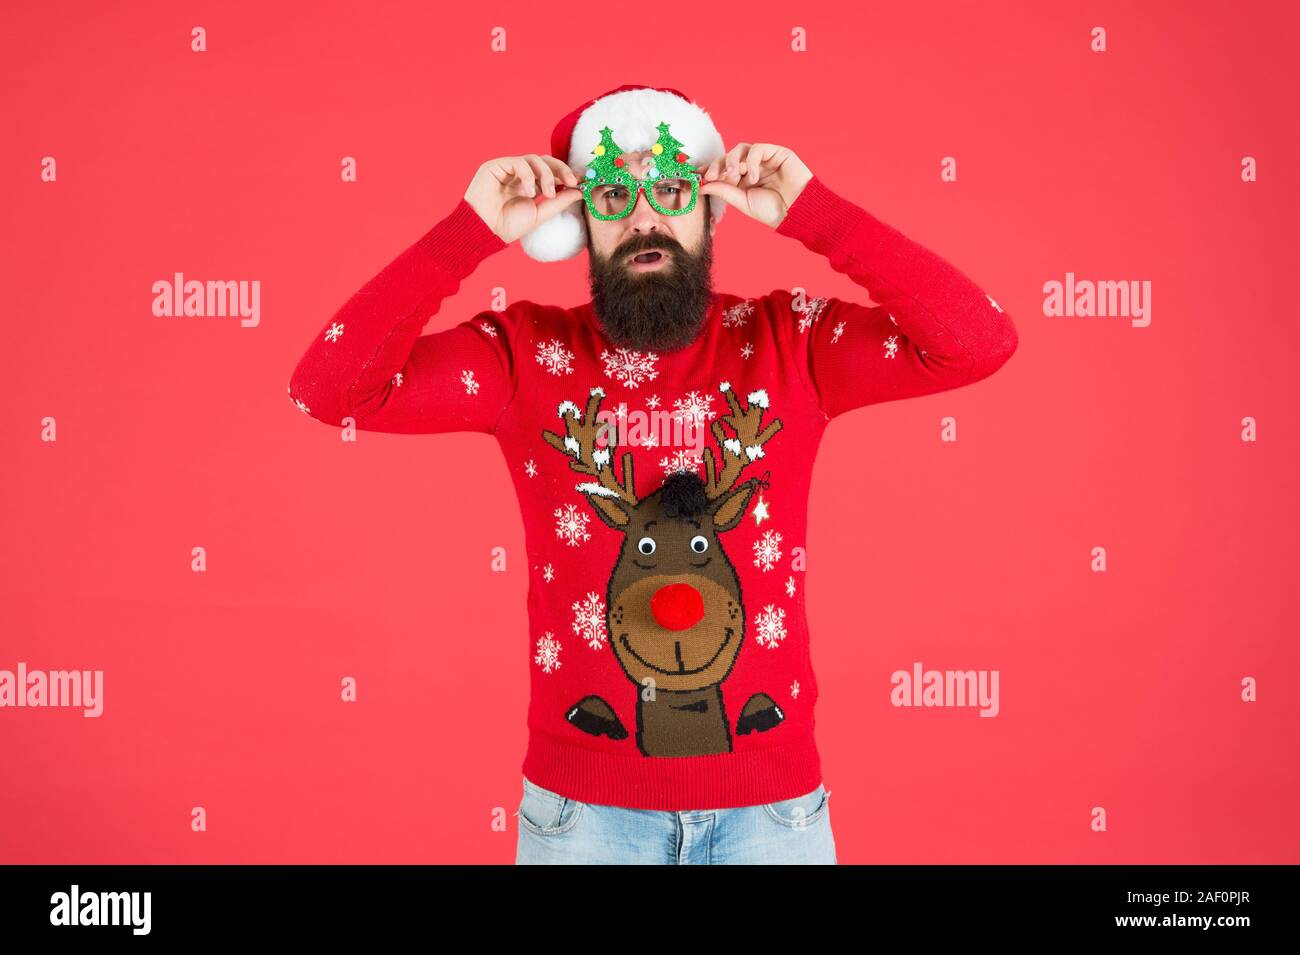 2020 Christmas Funnies Awesome Christmas. knitwear fashion. winter holiday celebration